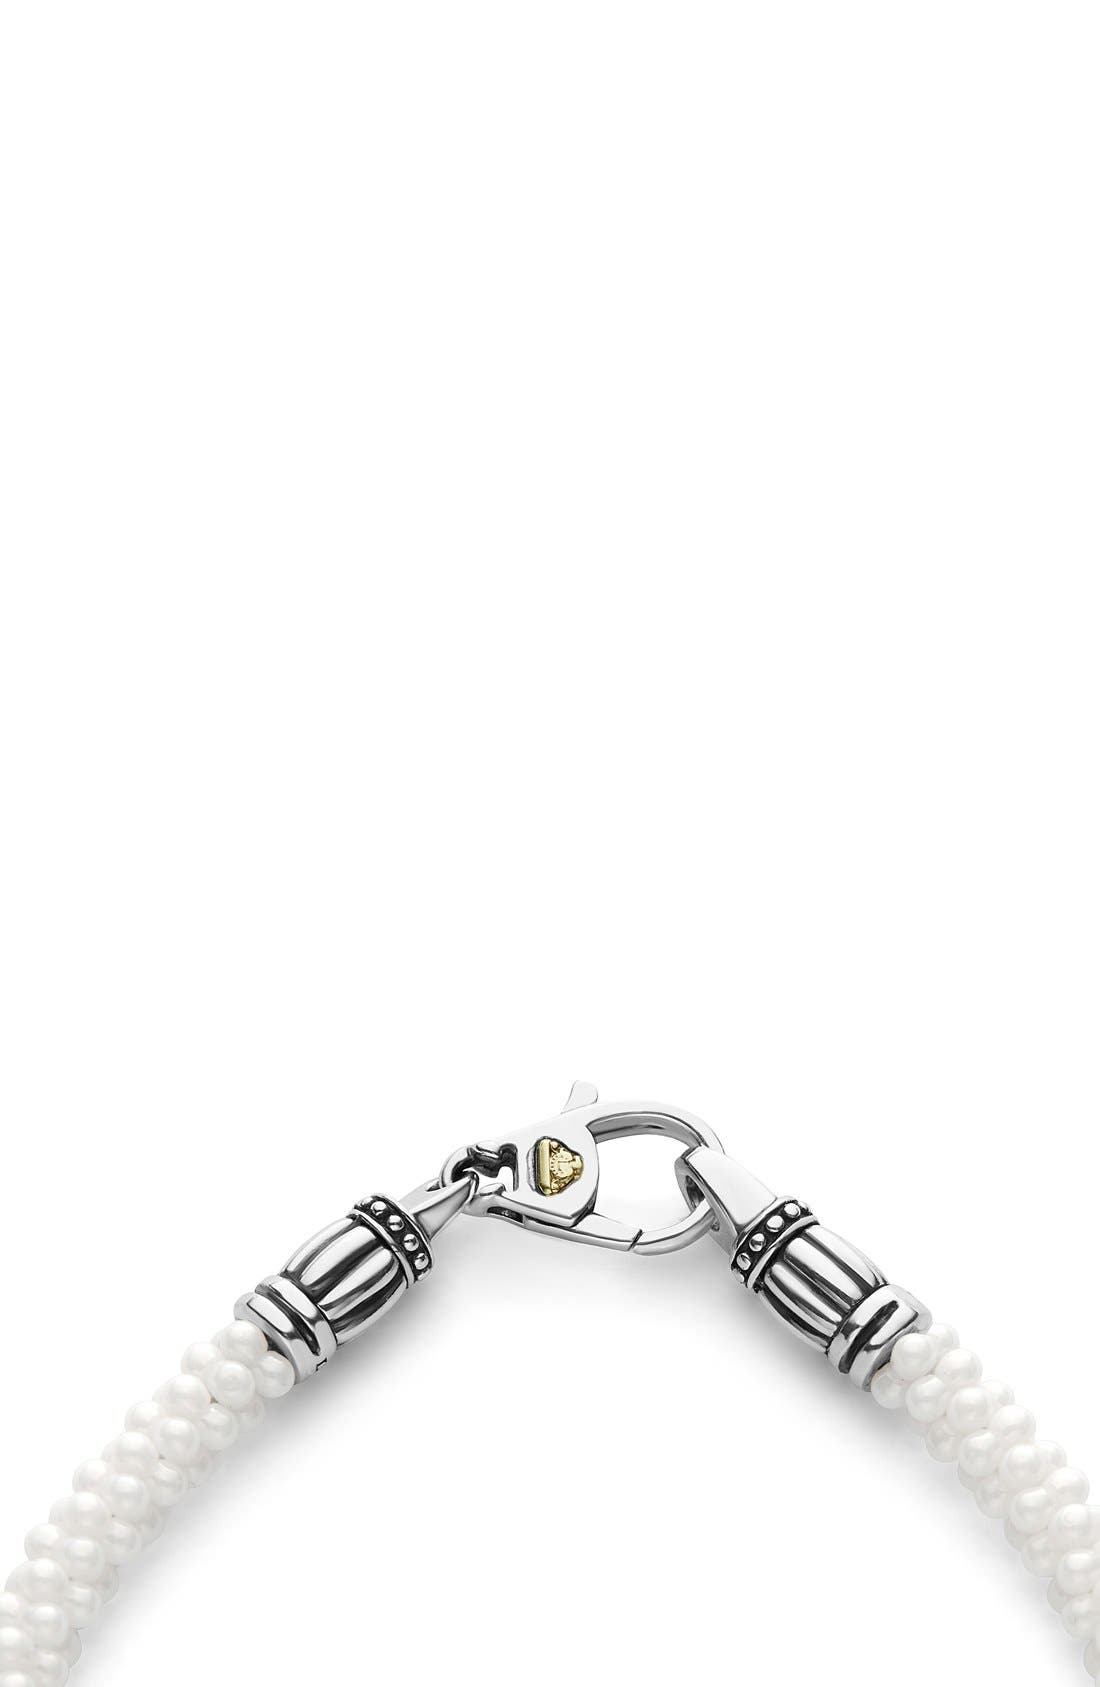 'Black & White Caviar' Bracelet,                             Alternate thumbnail 3, color,                             White/ Gold